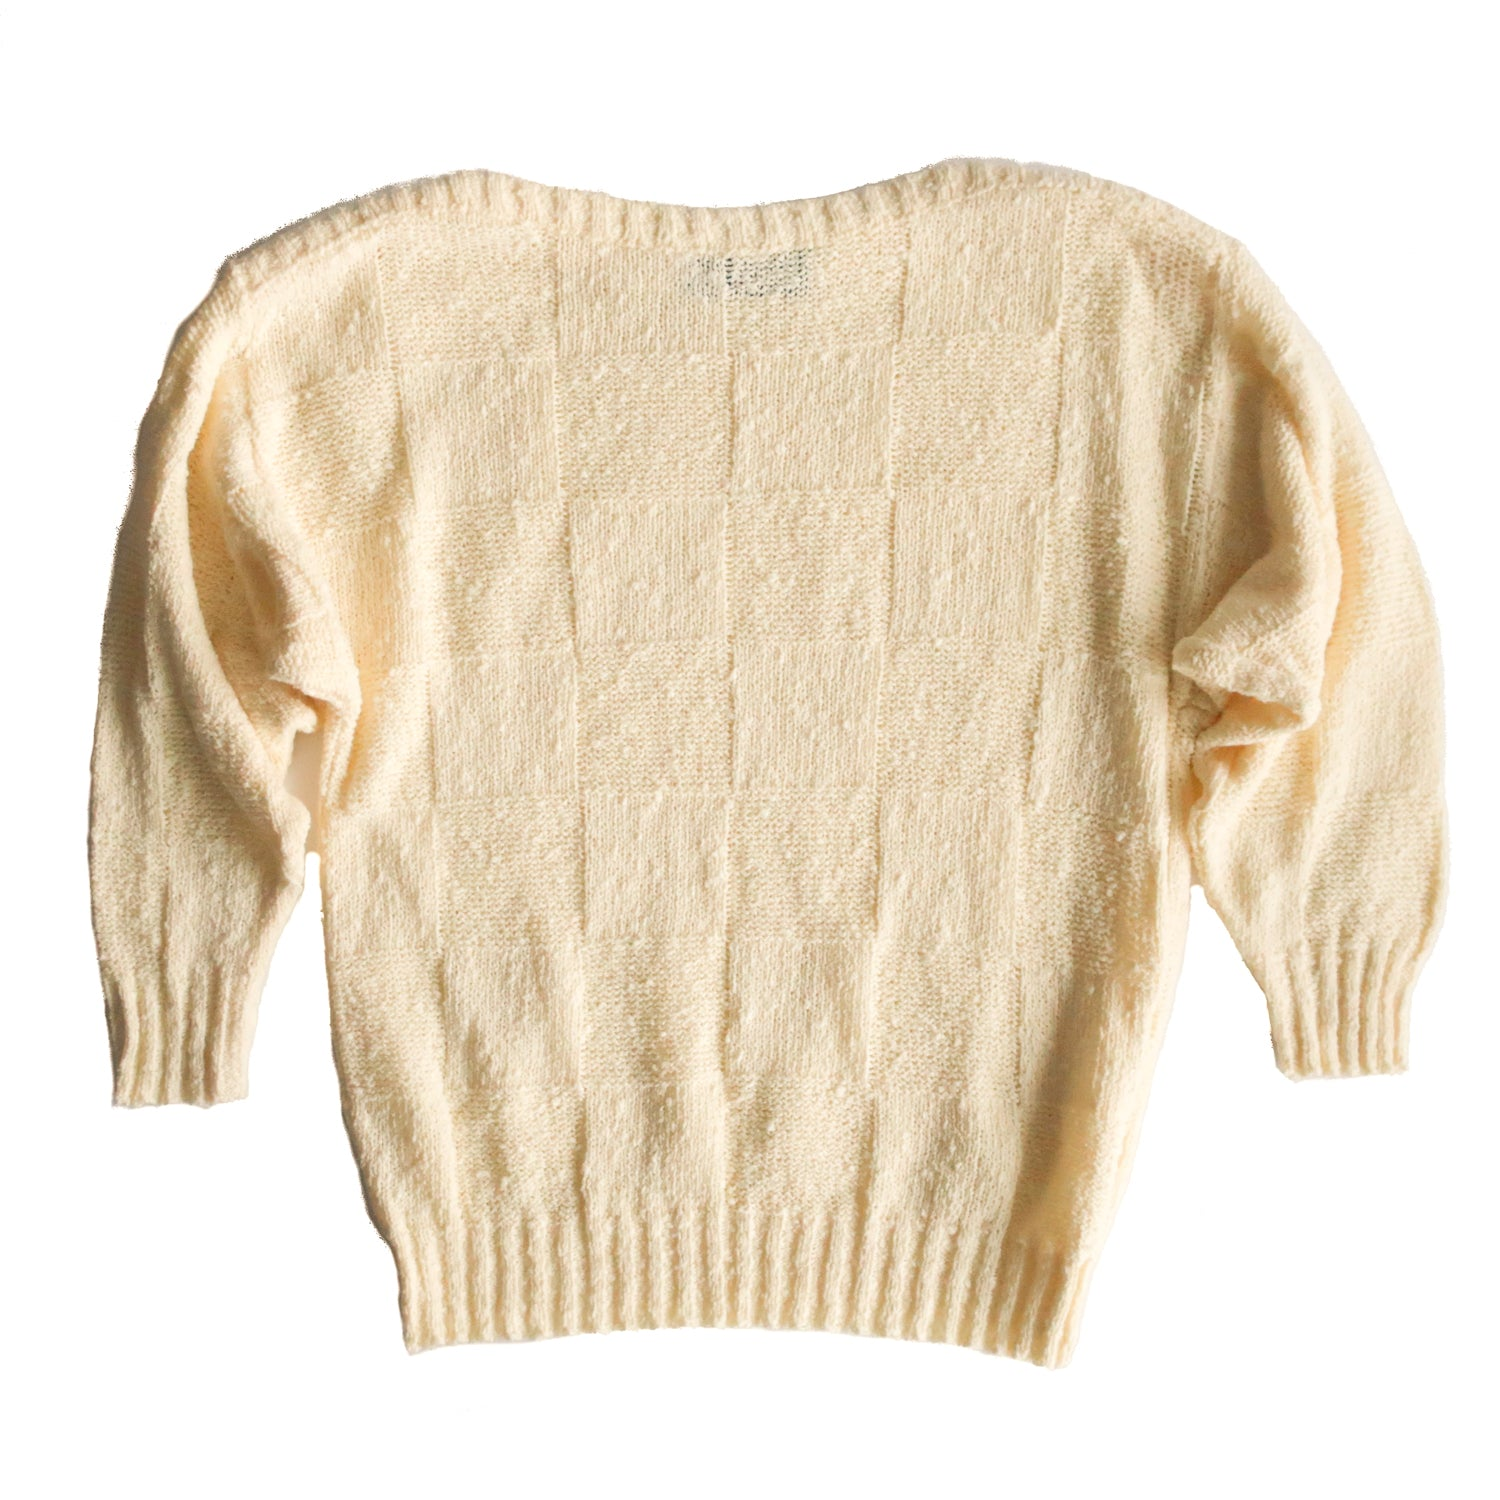 Second Room Vintage Clothing. Vintage pastel yellow sweater, with boat neck, subtle grid pattern, and ribbed cuffs and waist. Free North American shipping on all orders.